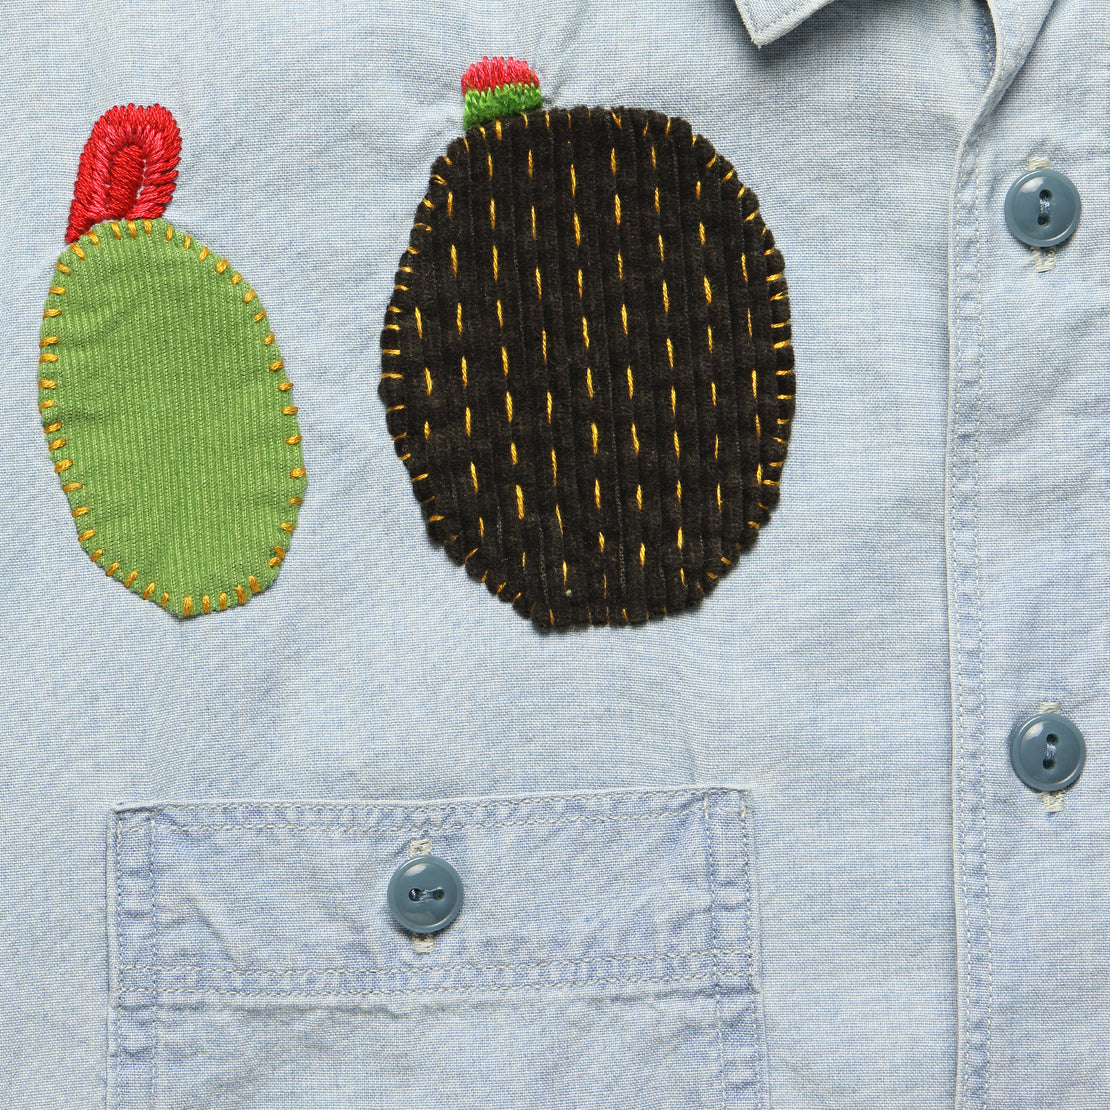 Chambray Work Shirt with Cactus Embroidery - Indigo